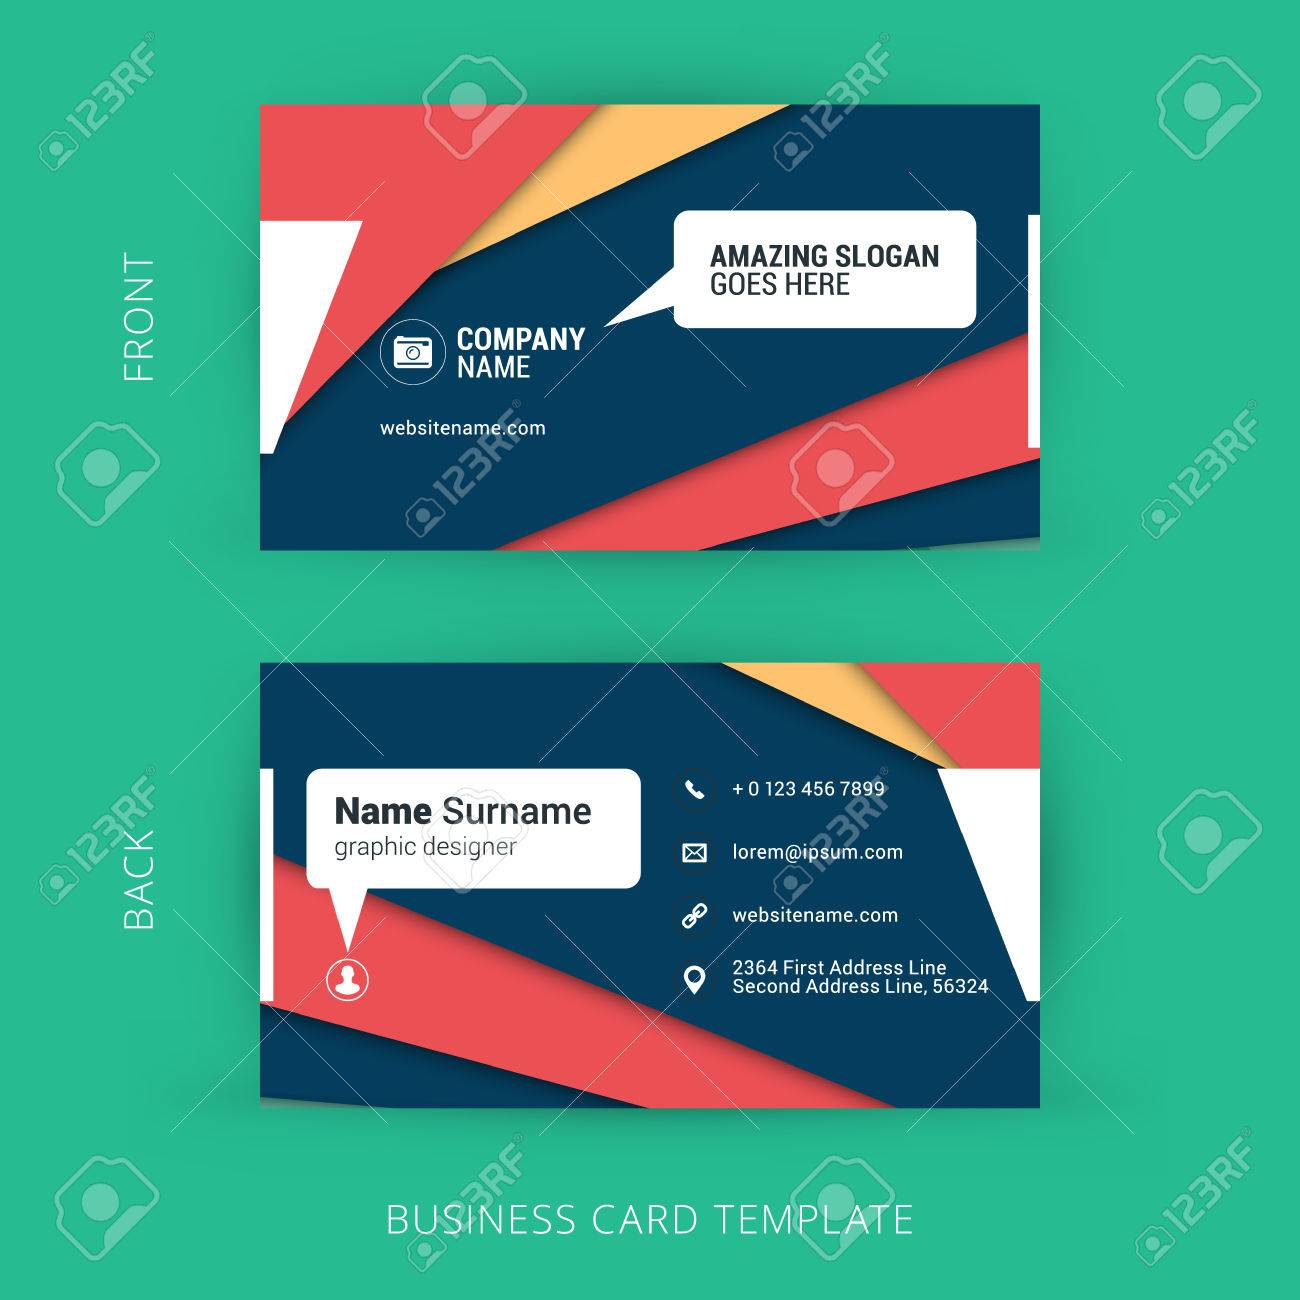 Business Card Background Templates Images - Templates Example Free ...